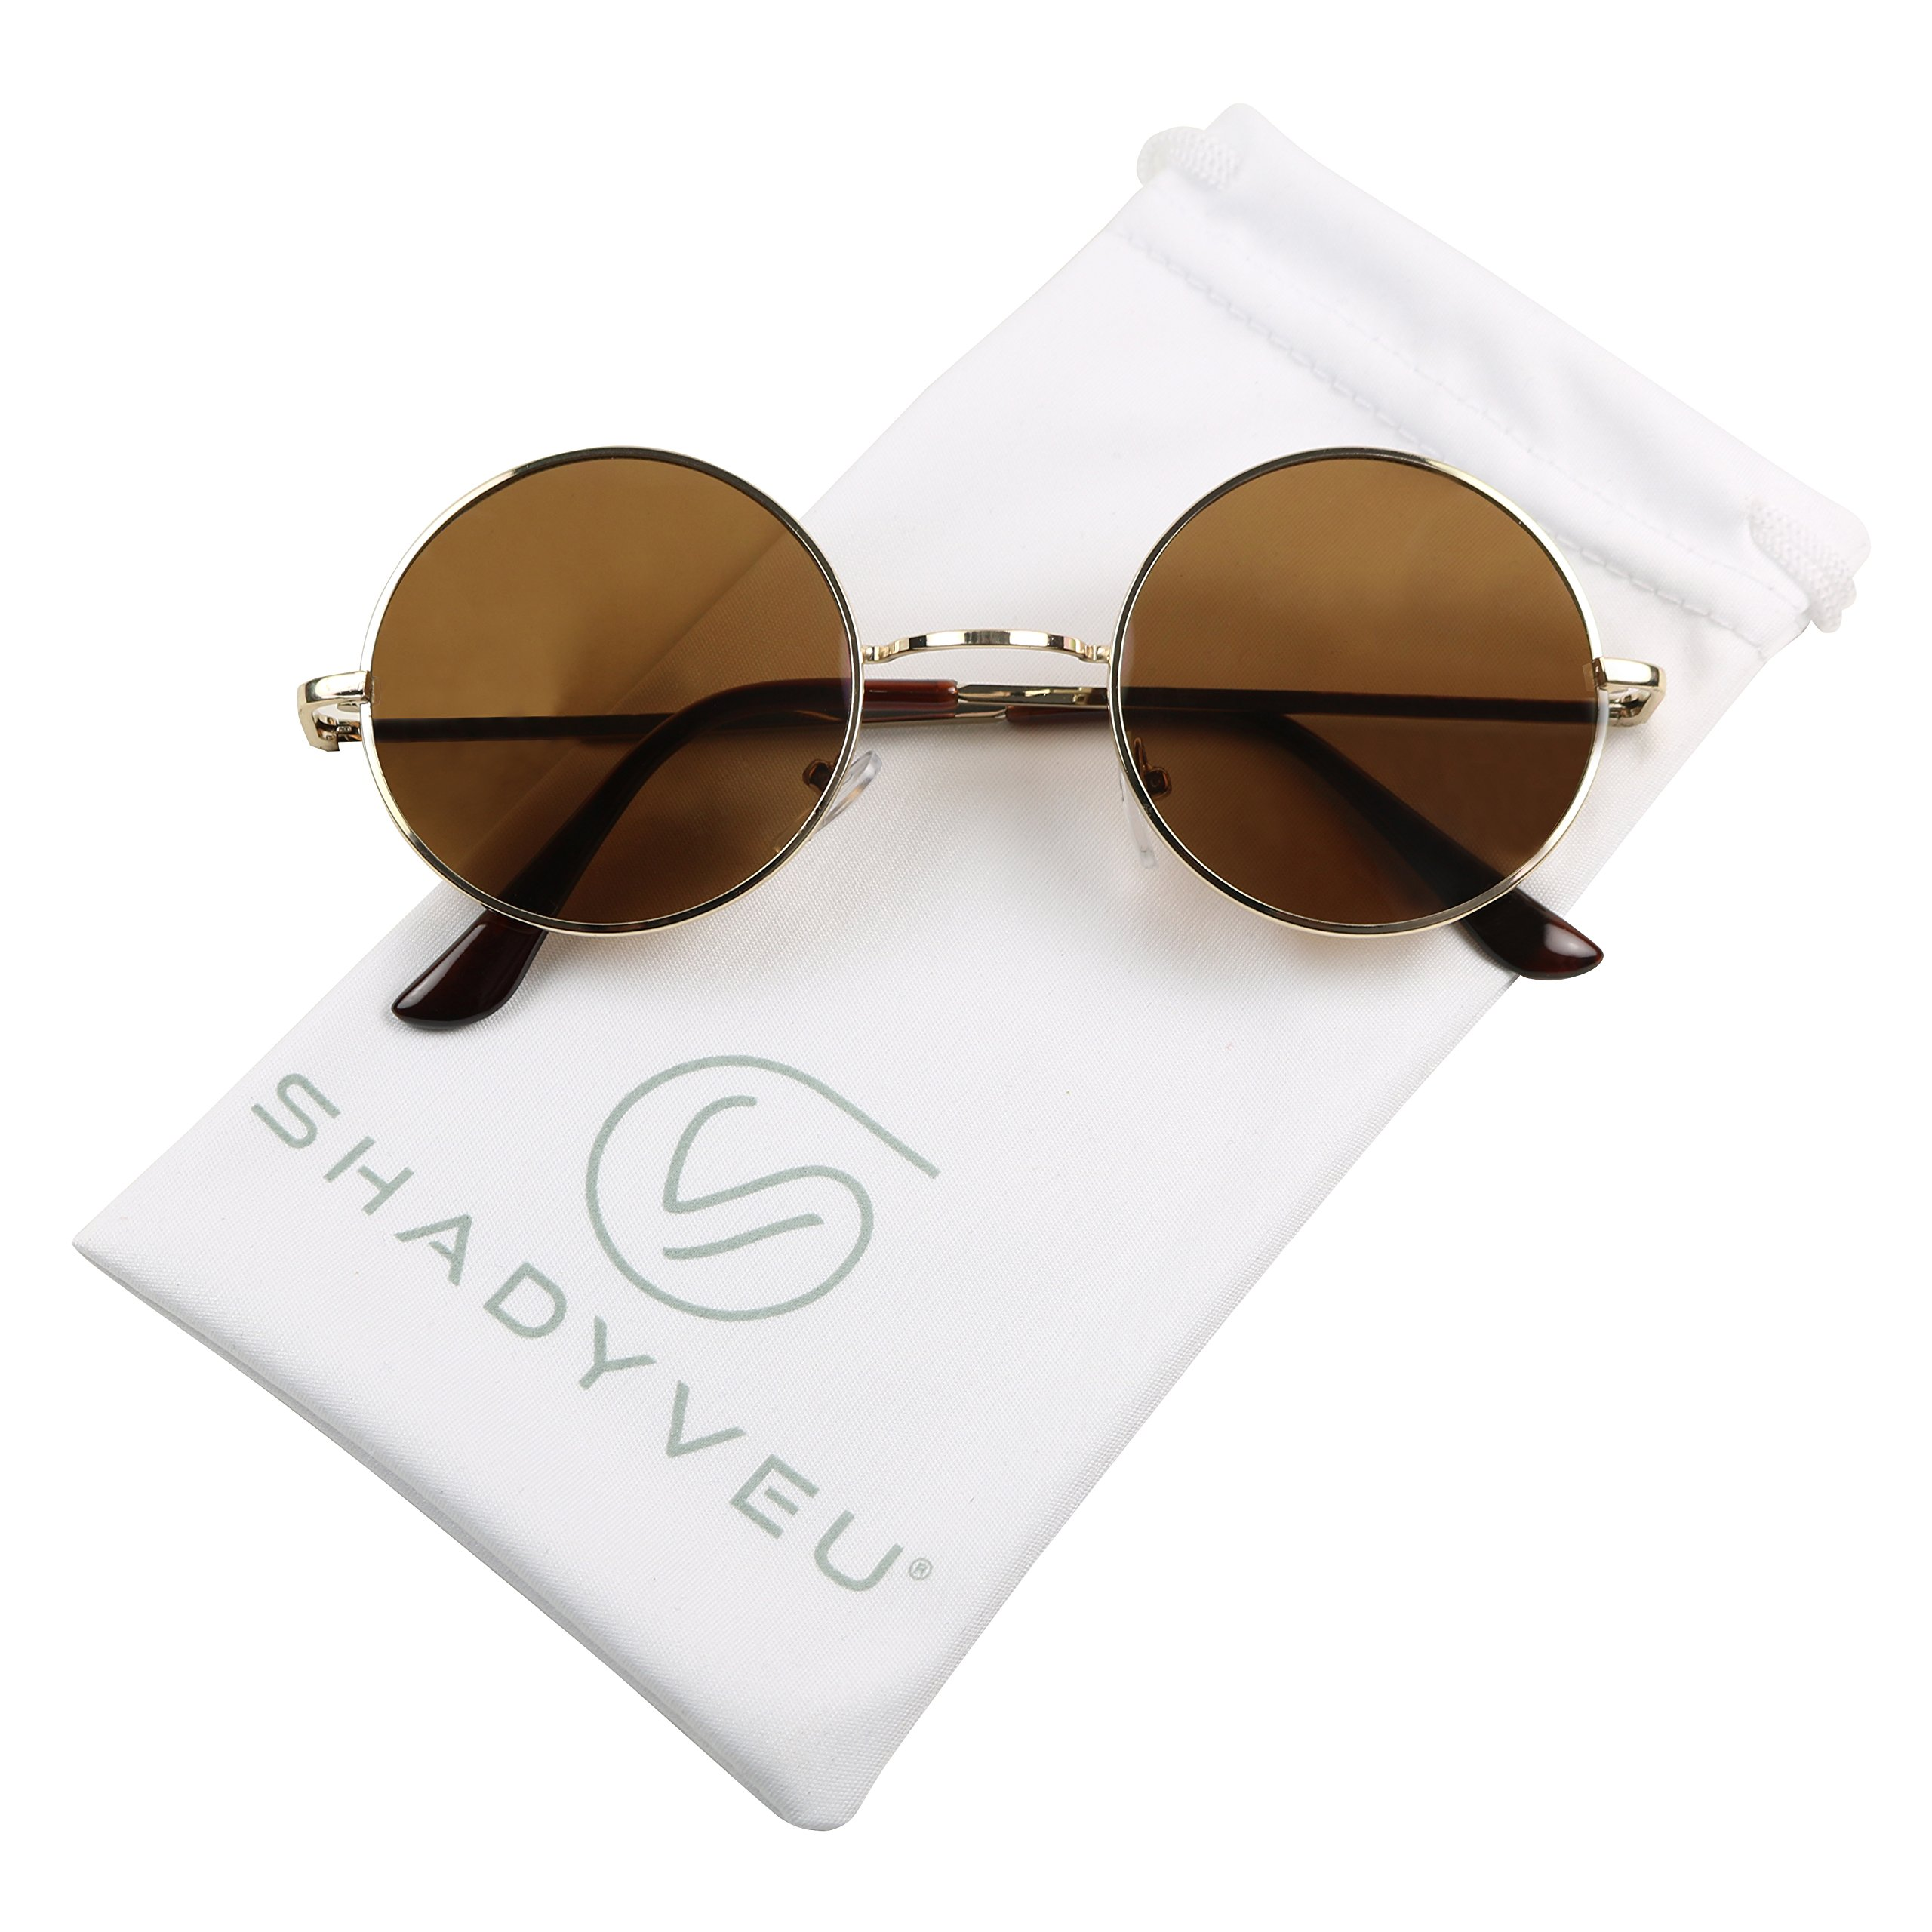 ShadyVEU - Retro Colorful Tint Lennon Style Round Groovy Hippie Wire Sunglasses (Brown Lens, 50) by ShadyVEU